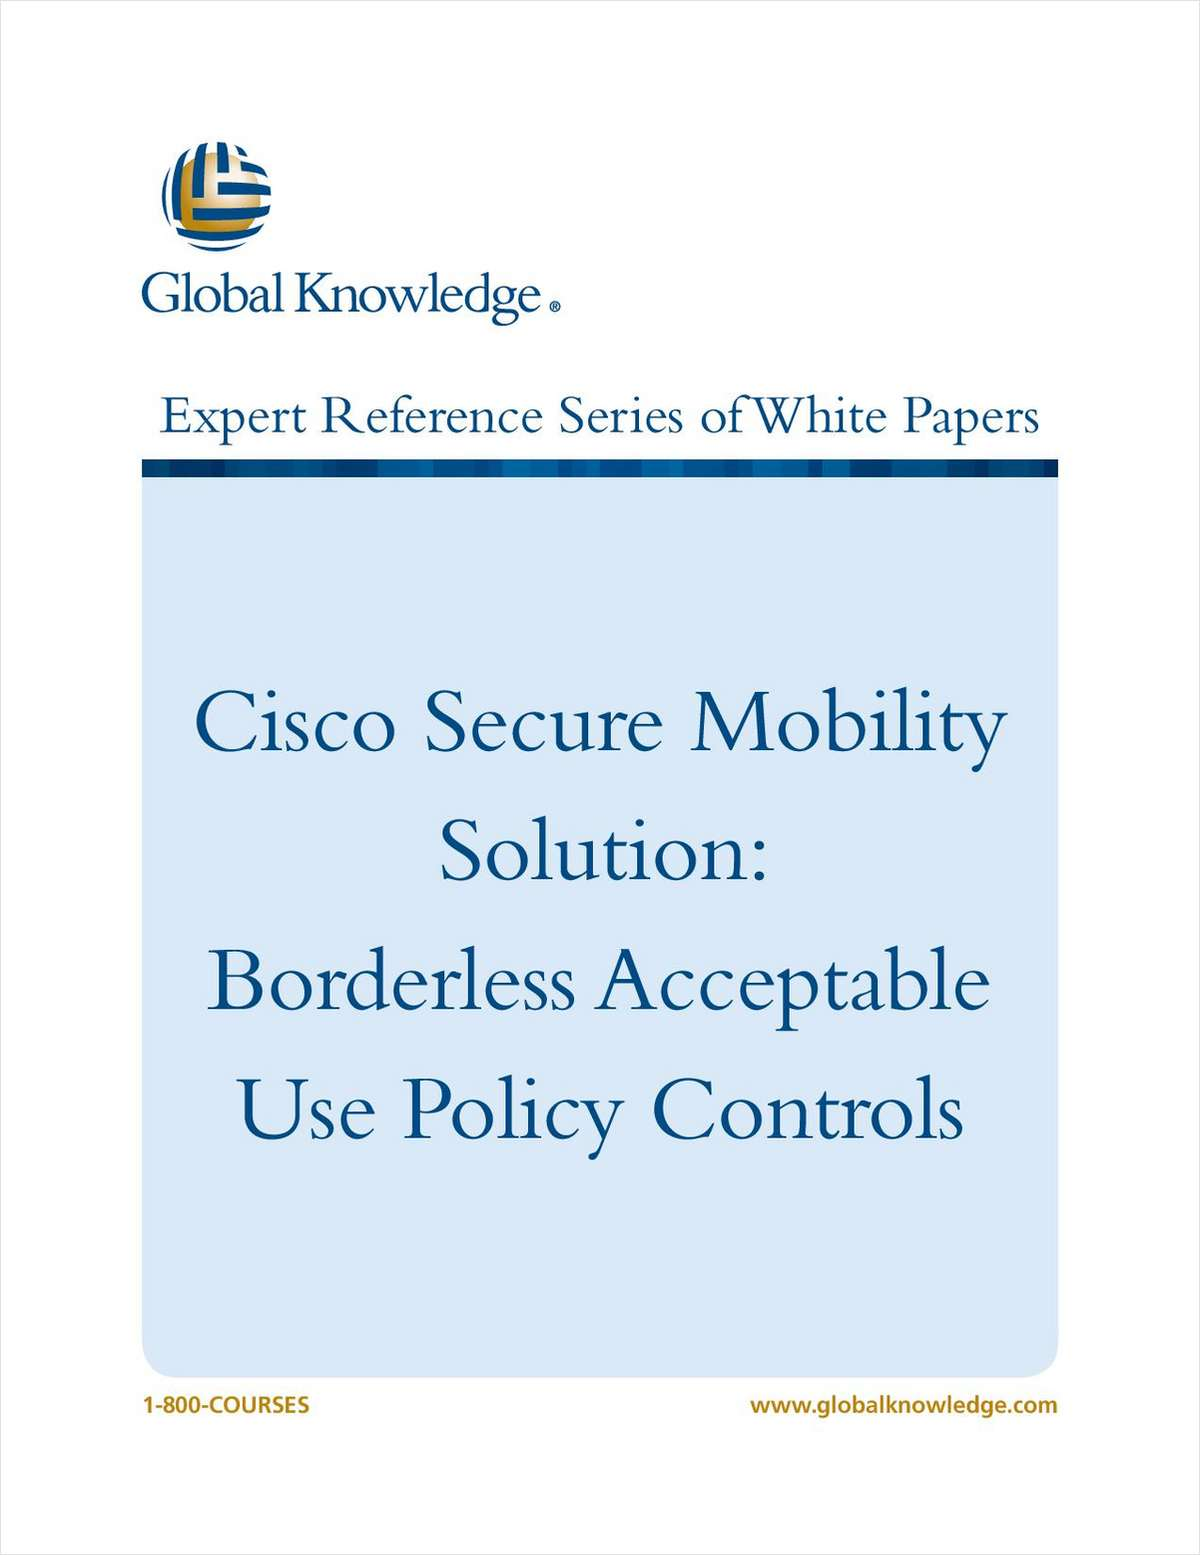 Cisco Secure Mobility Solution